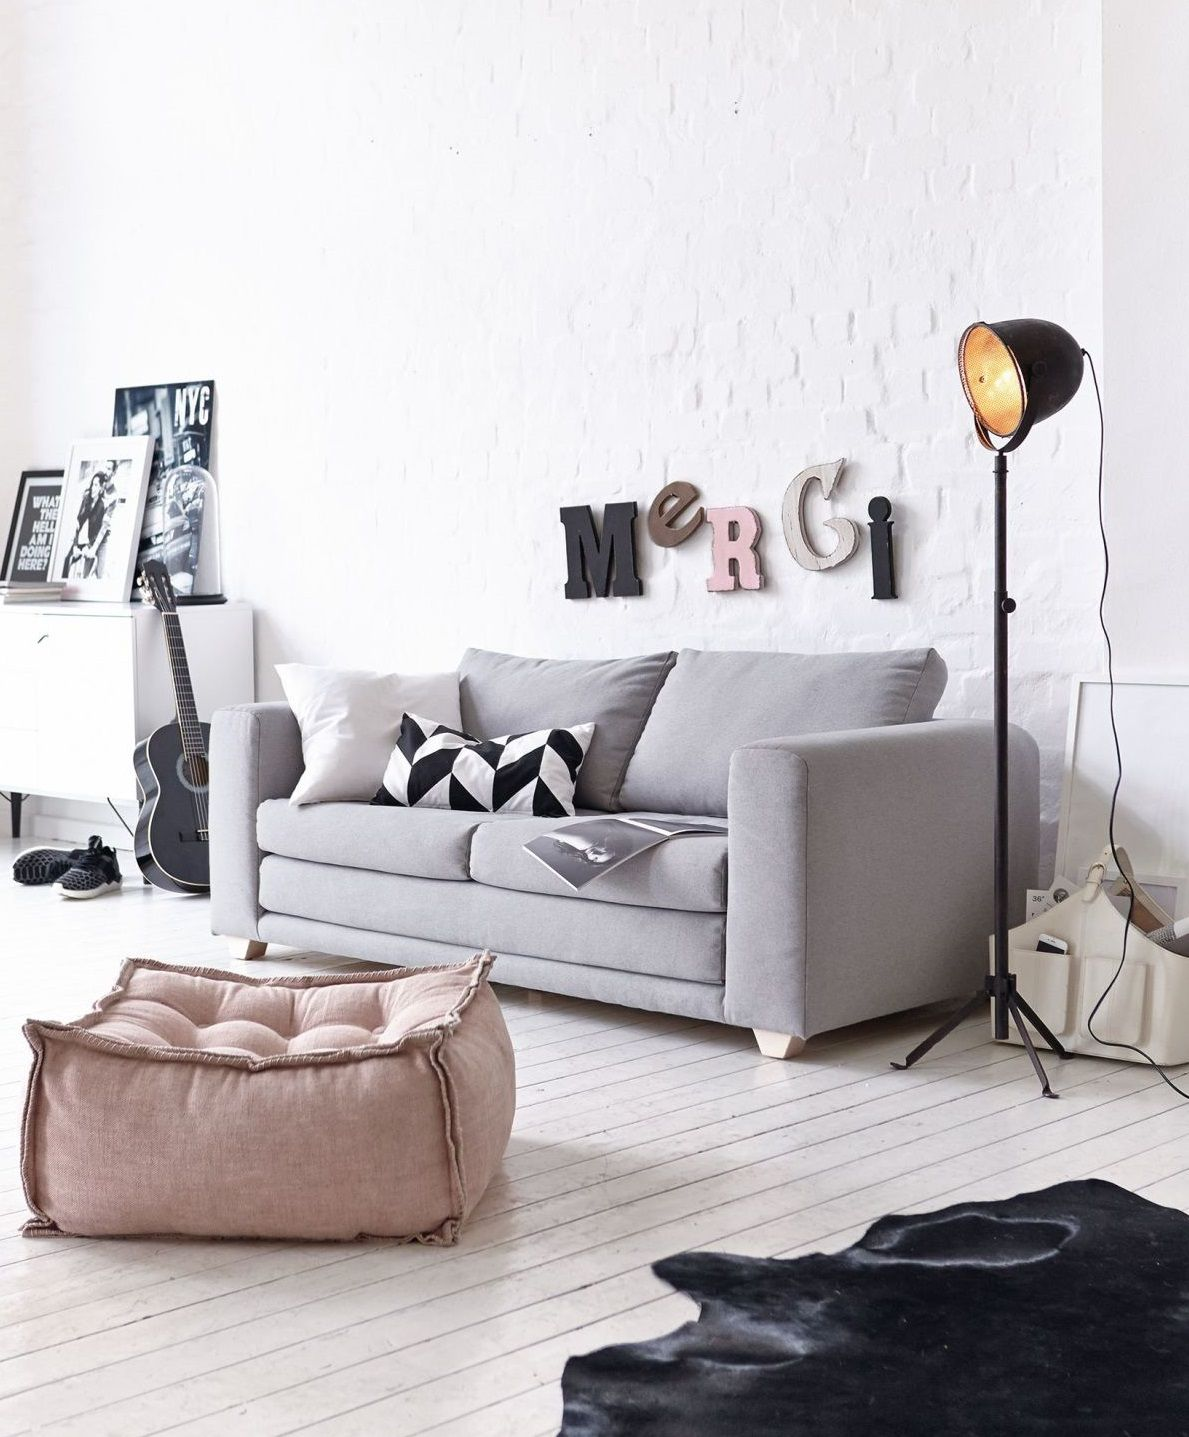 schlafsofa skandinavisches design 2 sitzer sofa mit schlaffunktion impressionen sofas. Black Bedroom Furniture Sets. Home Design Ideas